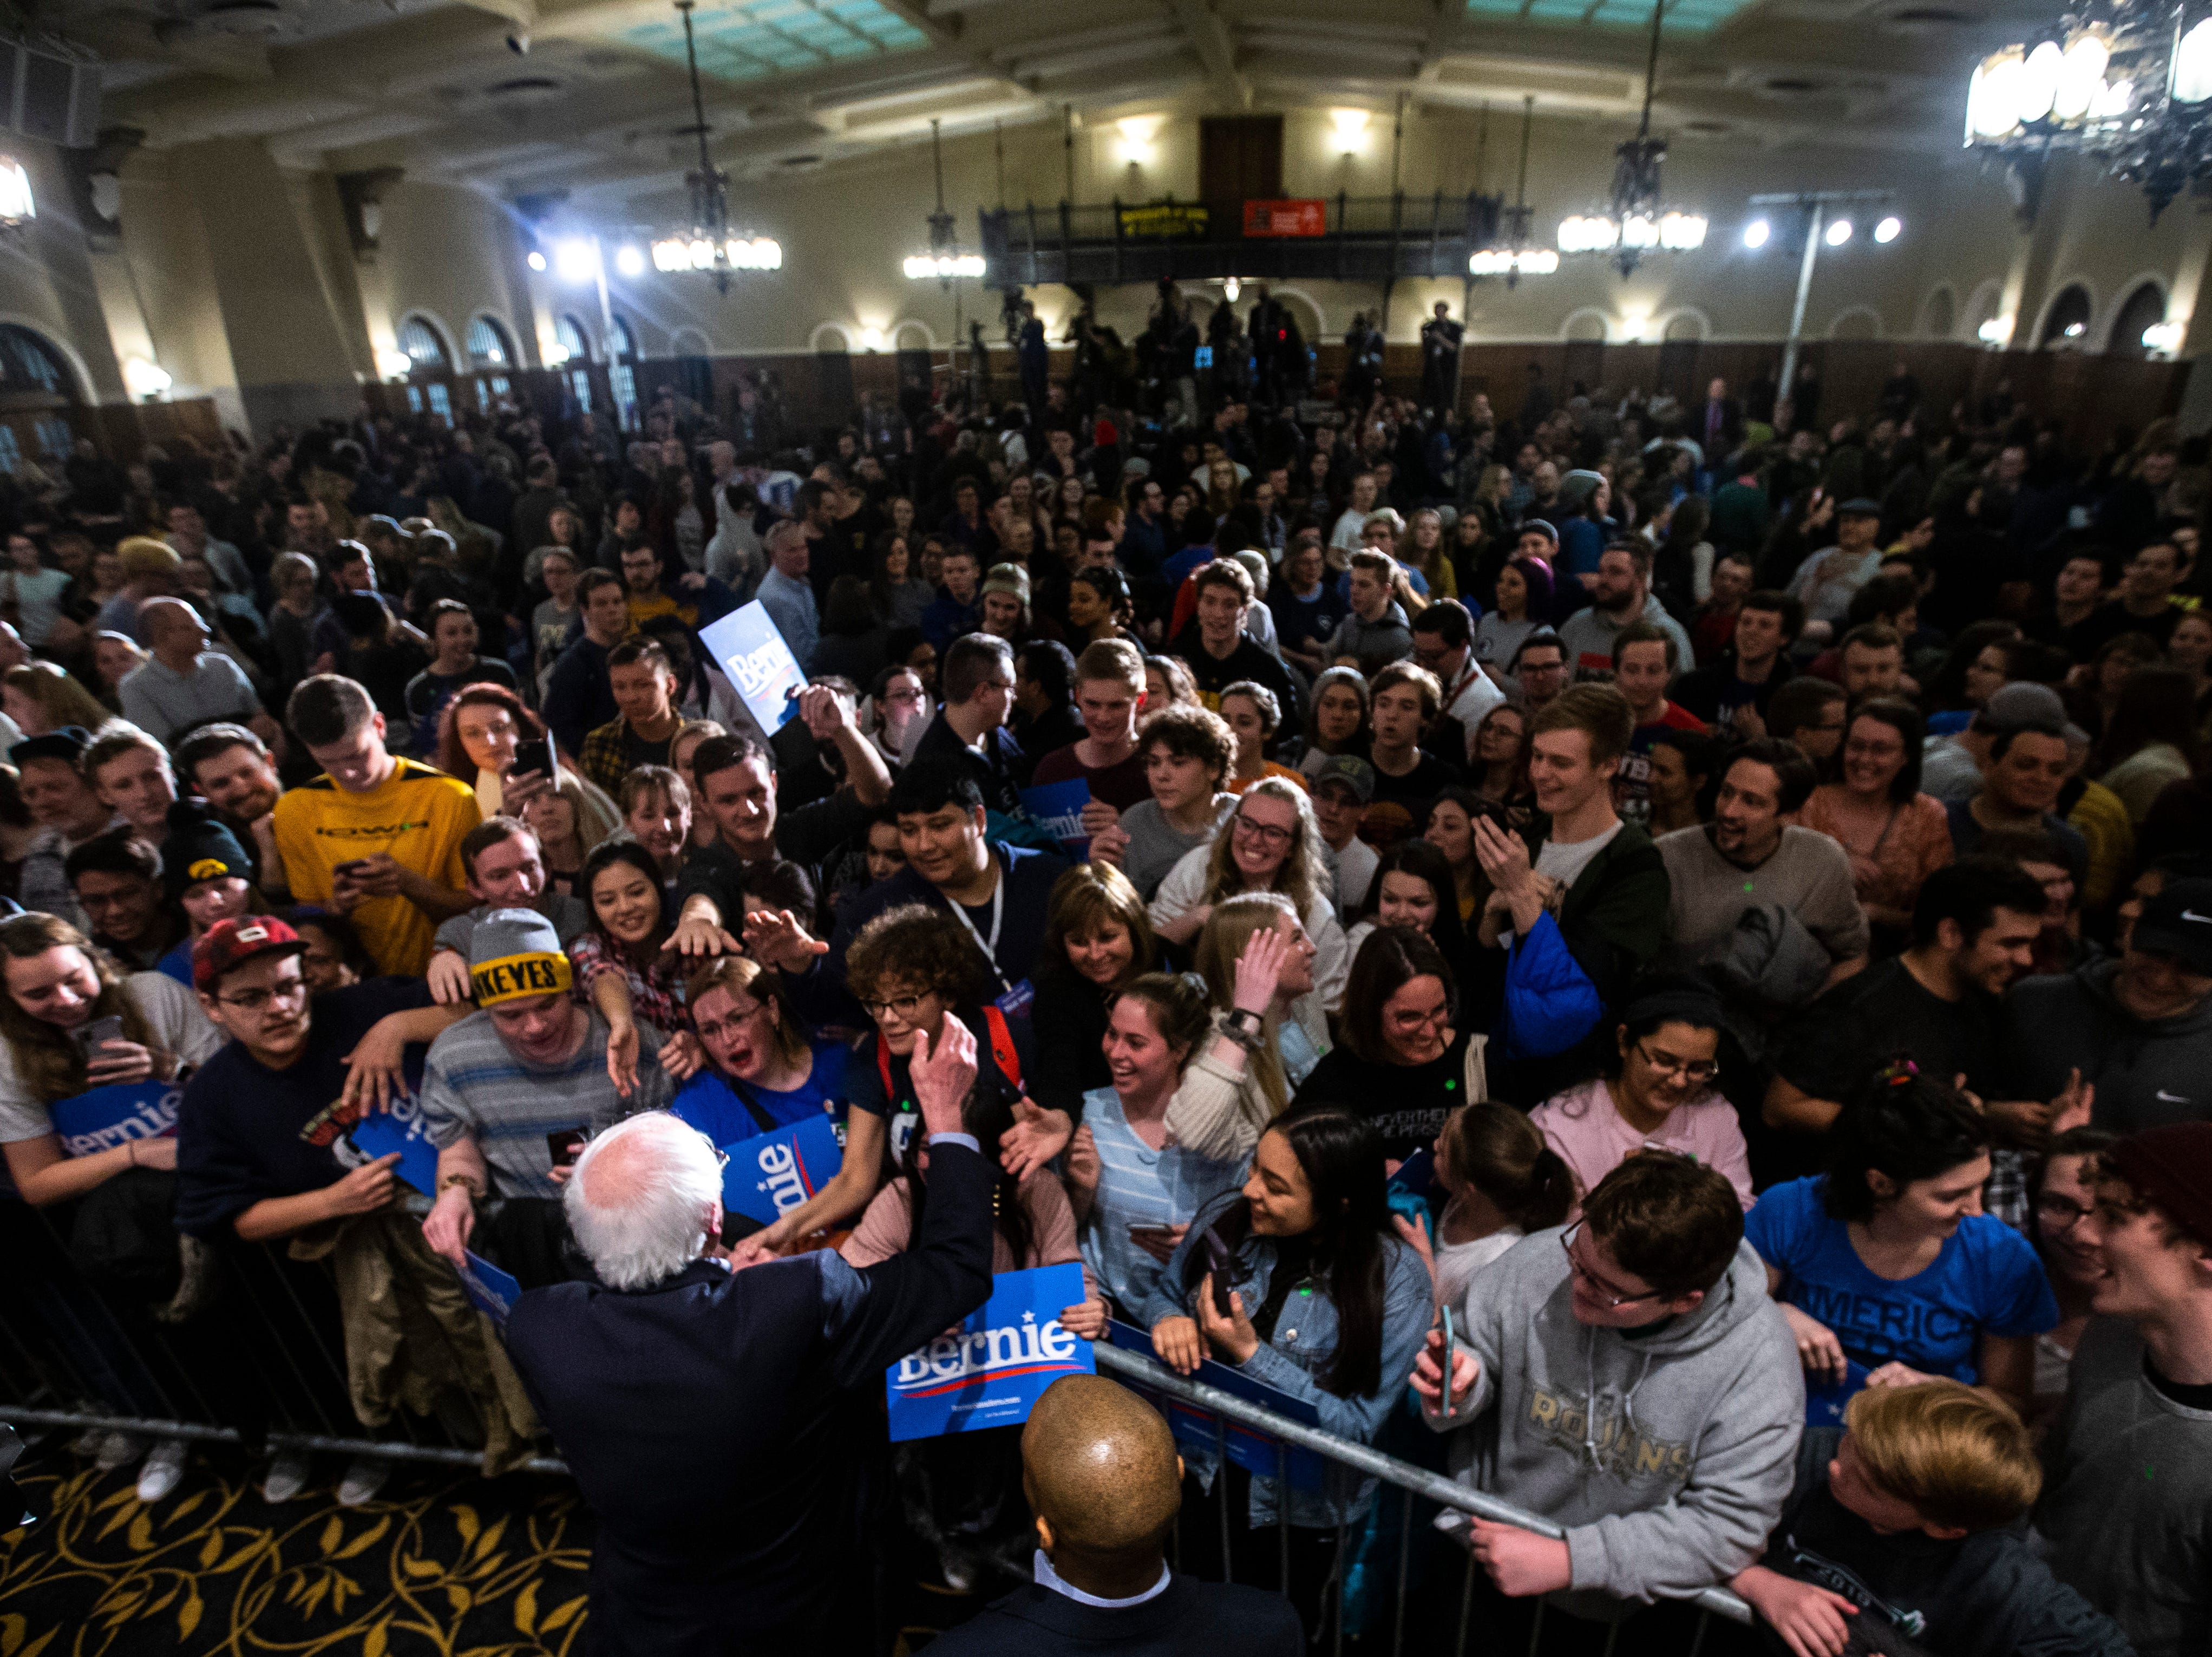 U.S. Sen. Bernie Sanders, I-VT, shakes hands with supporters after speaking at an event during his first trip to the state ahead of the caucus, Friday, March 8, 2019, at the Iowa Memorial Union on the University of Iowa campus in Iowa City, Iowa. The official crowd size from the campaign was 1,804, including the overflow crowd that Sanders spoke to before his main speech.